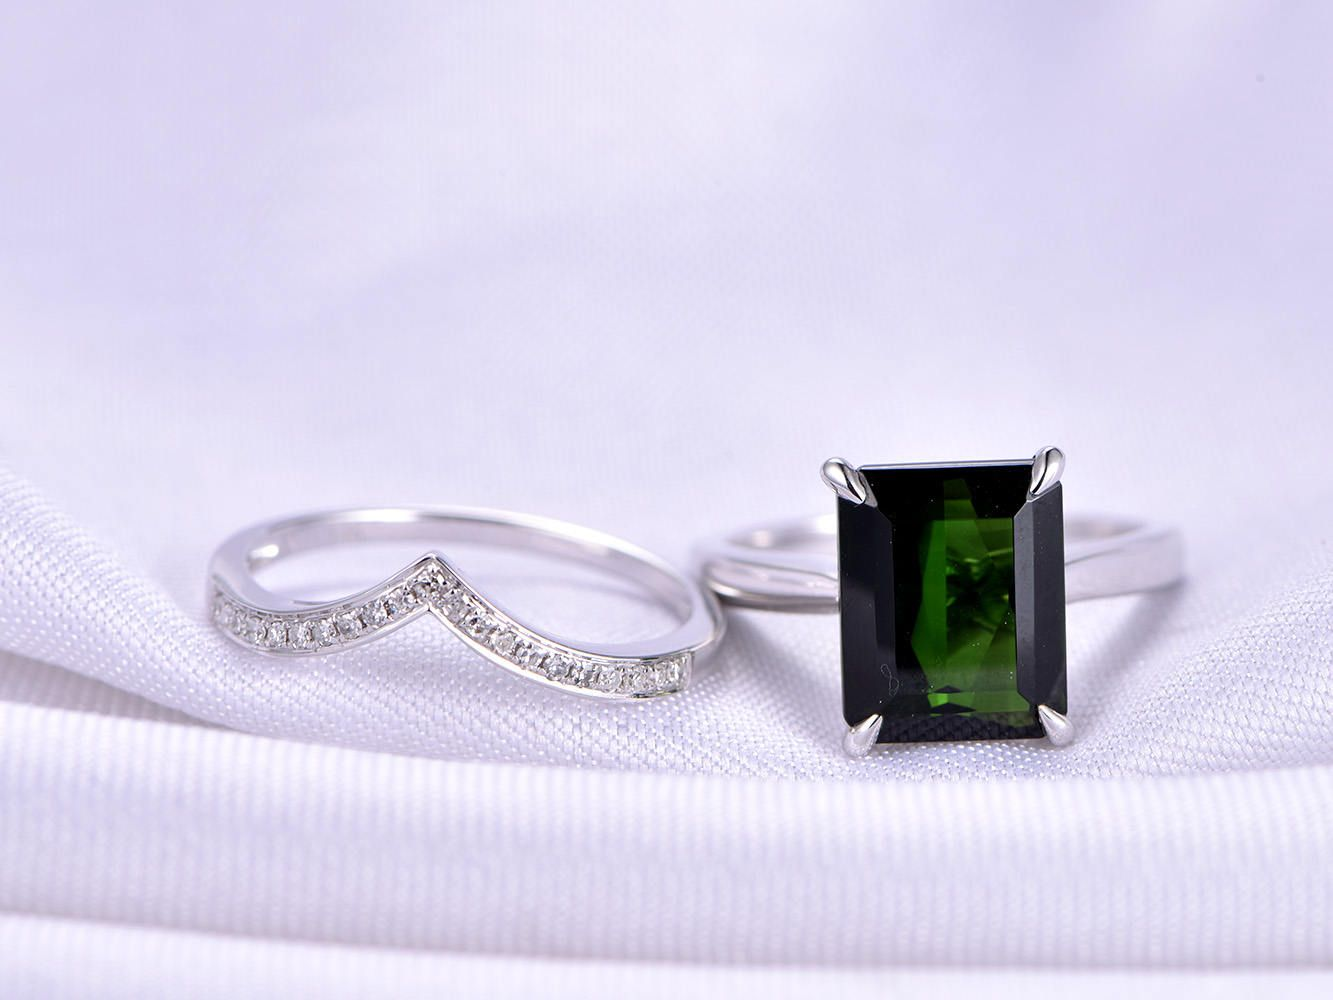 image tourmaline gold cluster engagement gemstone diamond green ring rings white jewellery